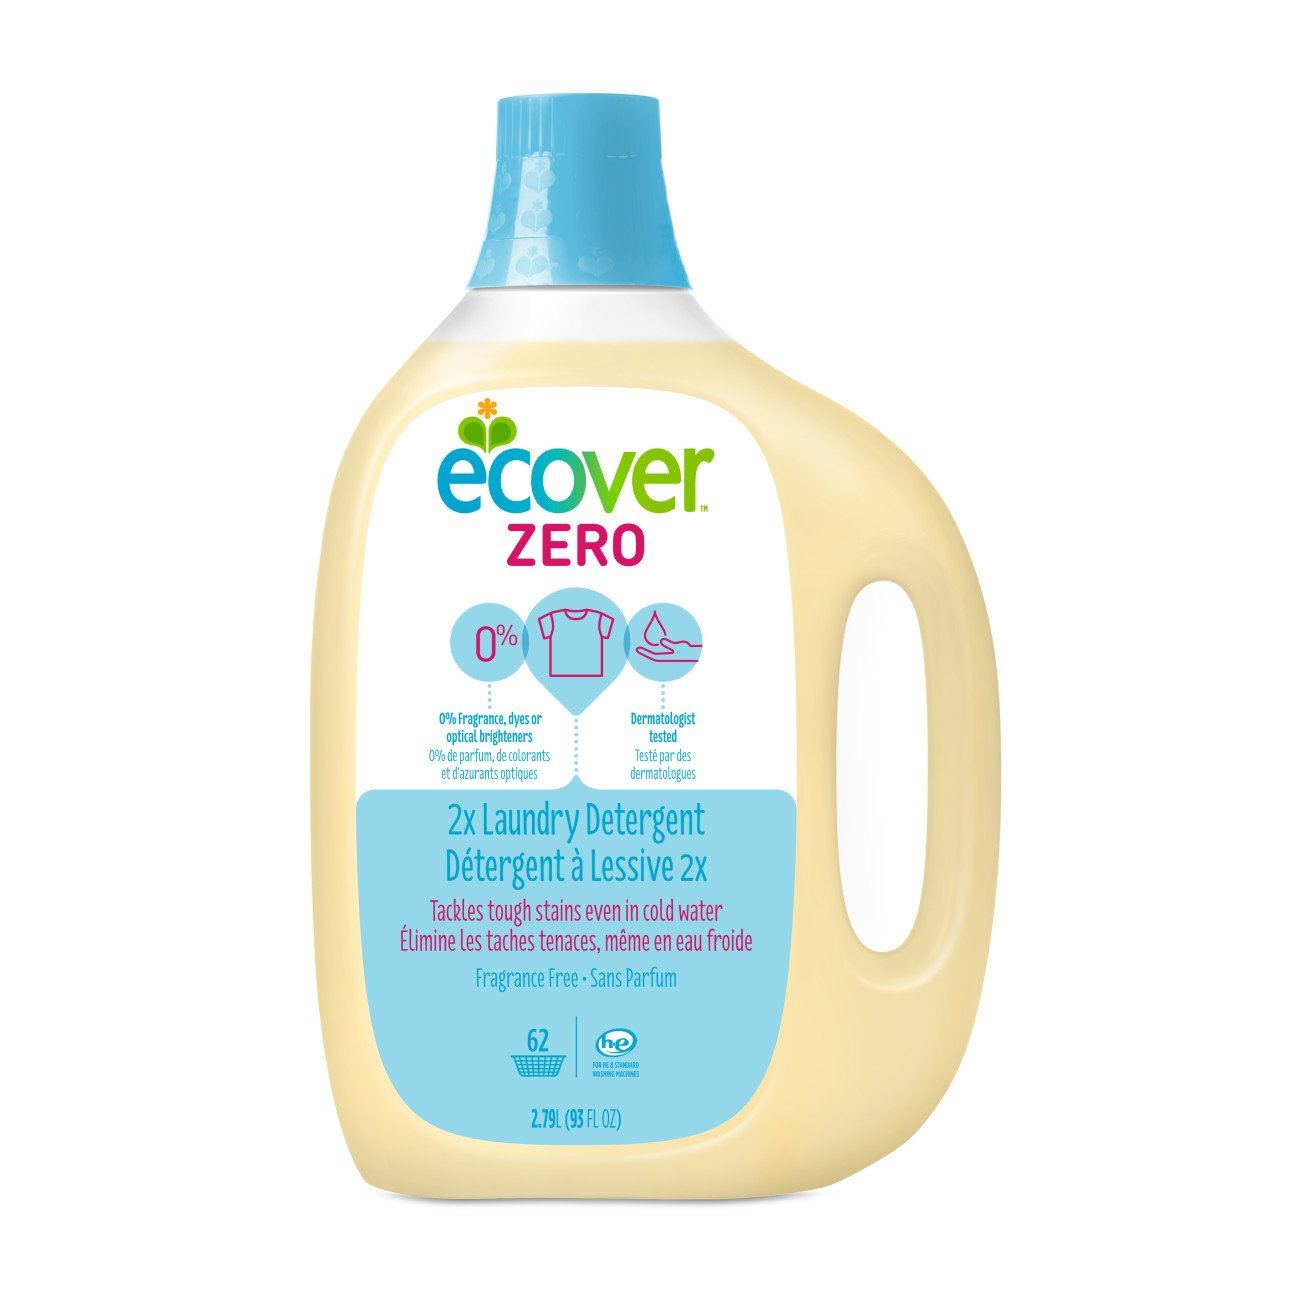 Ecover Zero Laundry Detergent, Fragrance Free, 93 Ounce (Pack 4) by Ecover